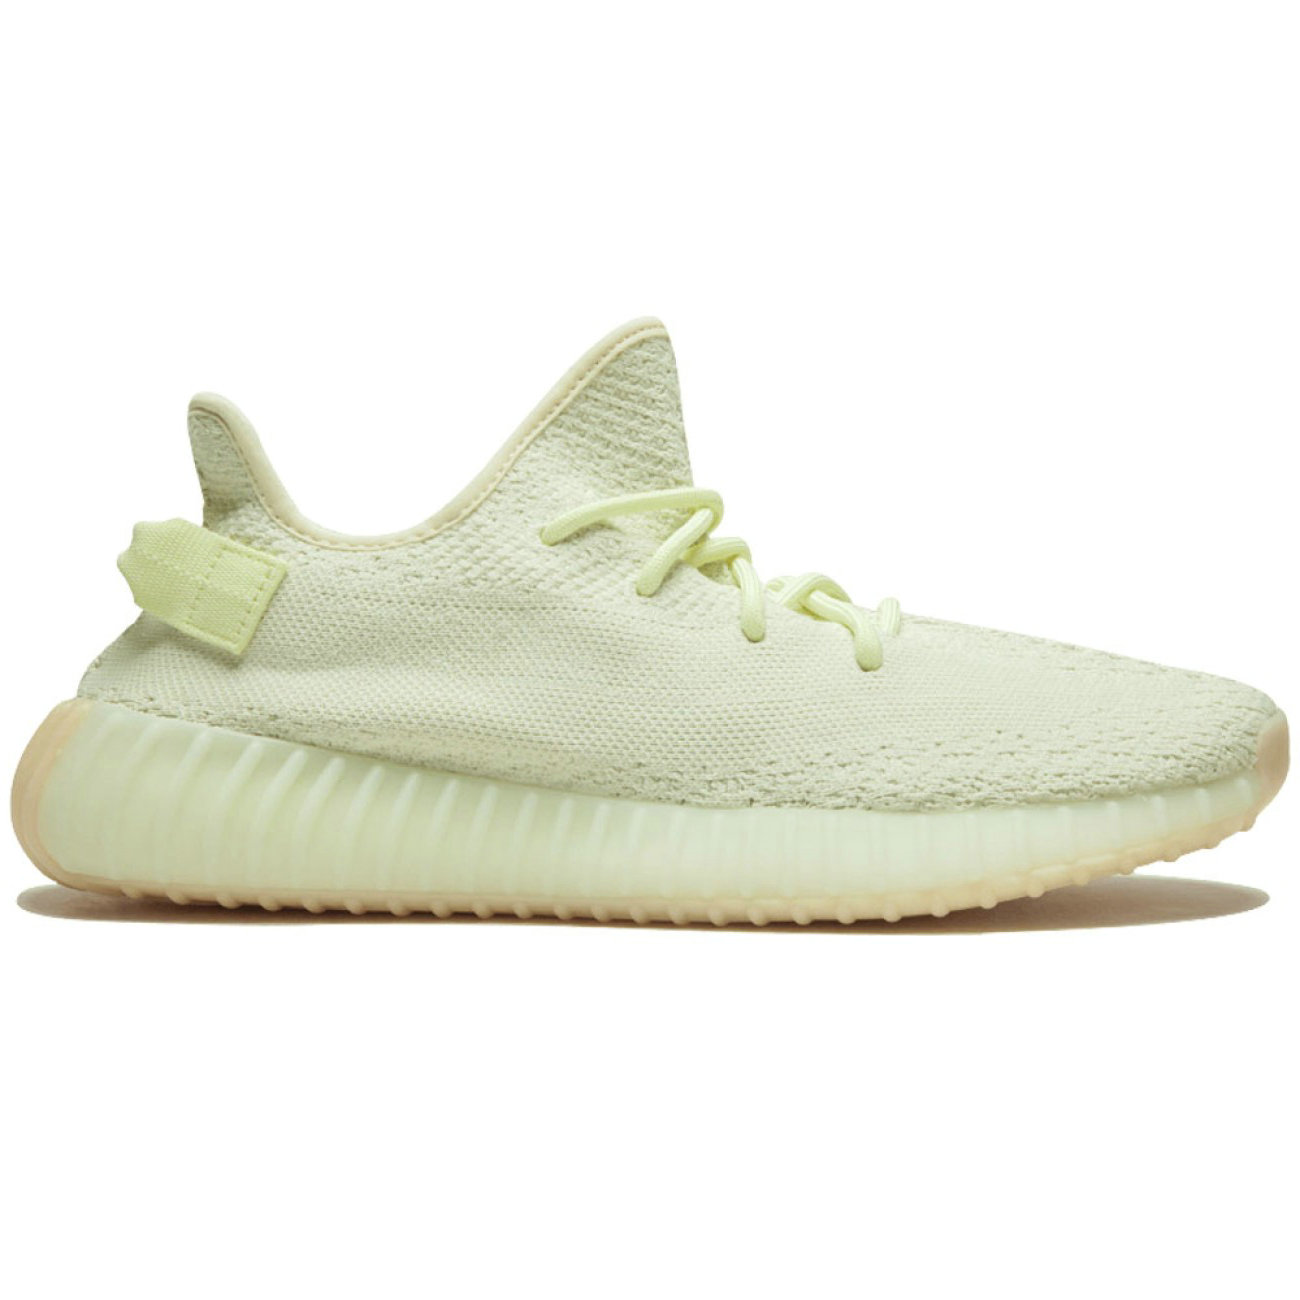 ceab2aec1fd4 Adidas Yeezy Boost 350 V2 Butter Adidas Yeezy 350 V2  BUTTER   yeezy ...